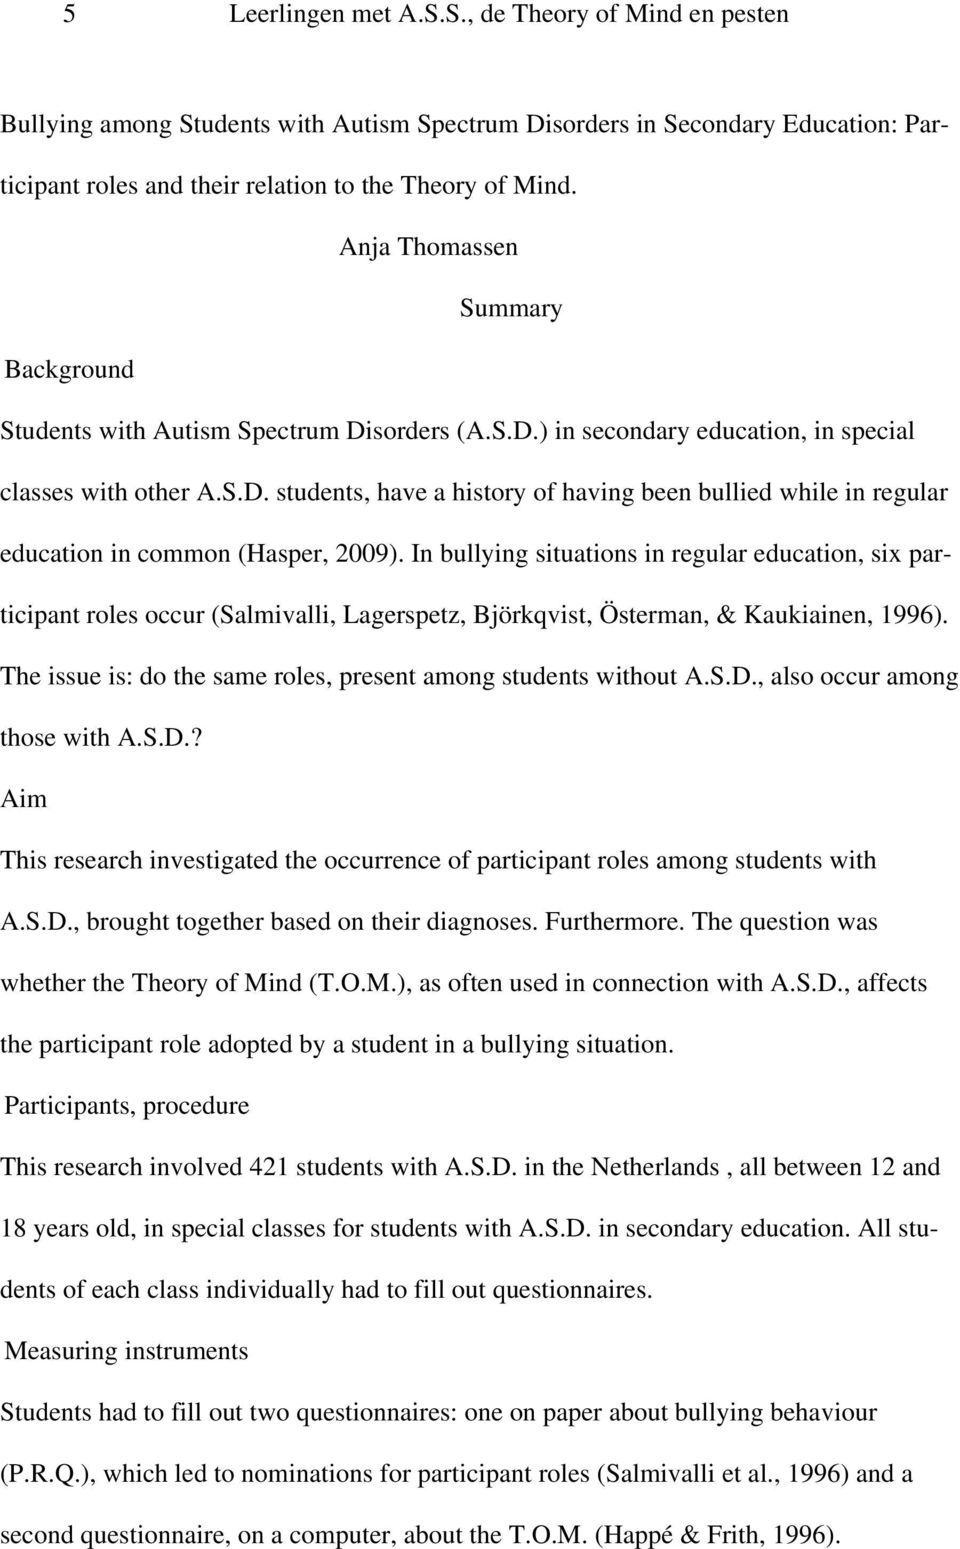 In bullying situations in regular education, six participant roles occur (Salmivalli, Lagerspetz, Björkqvist, Österman, & Kaukiainen, 1996).